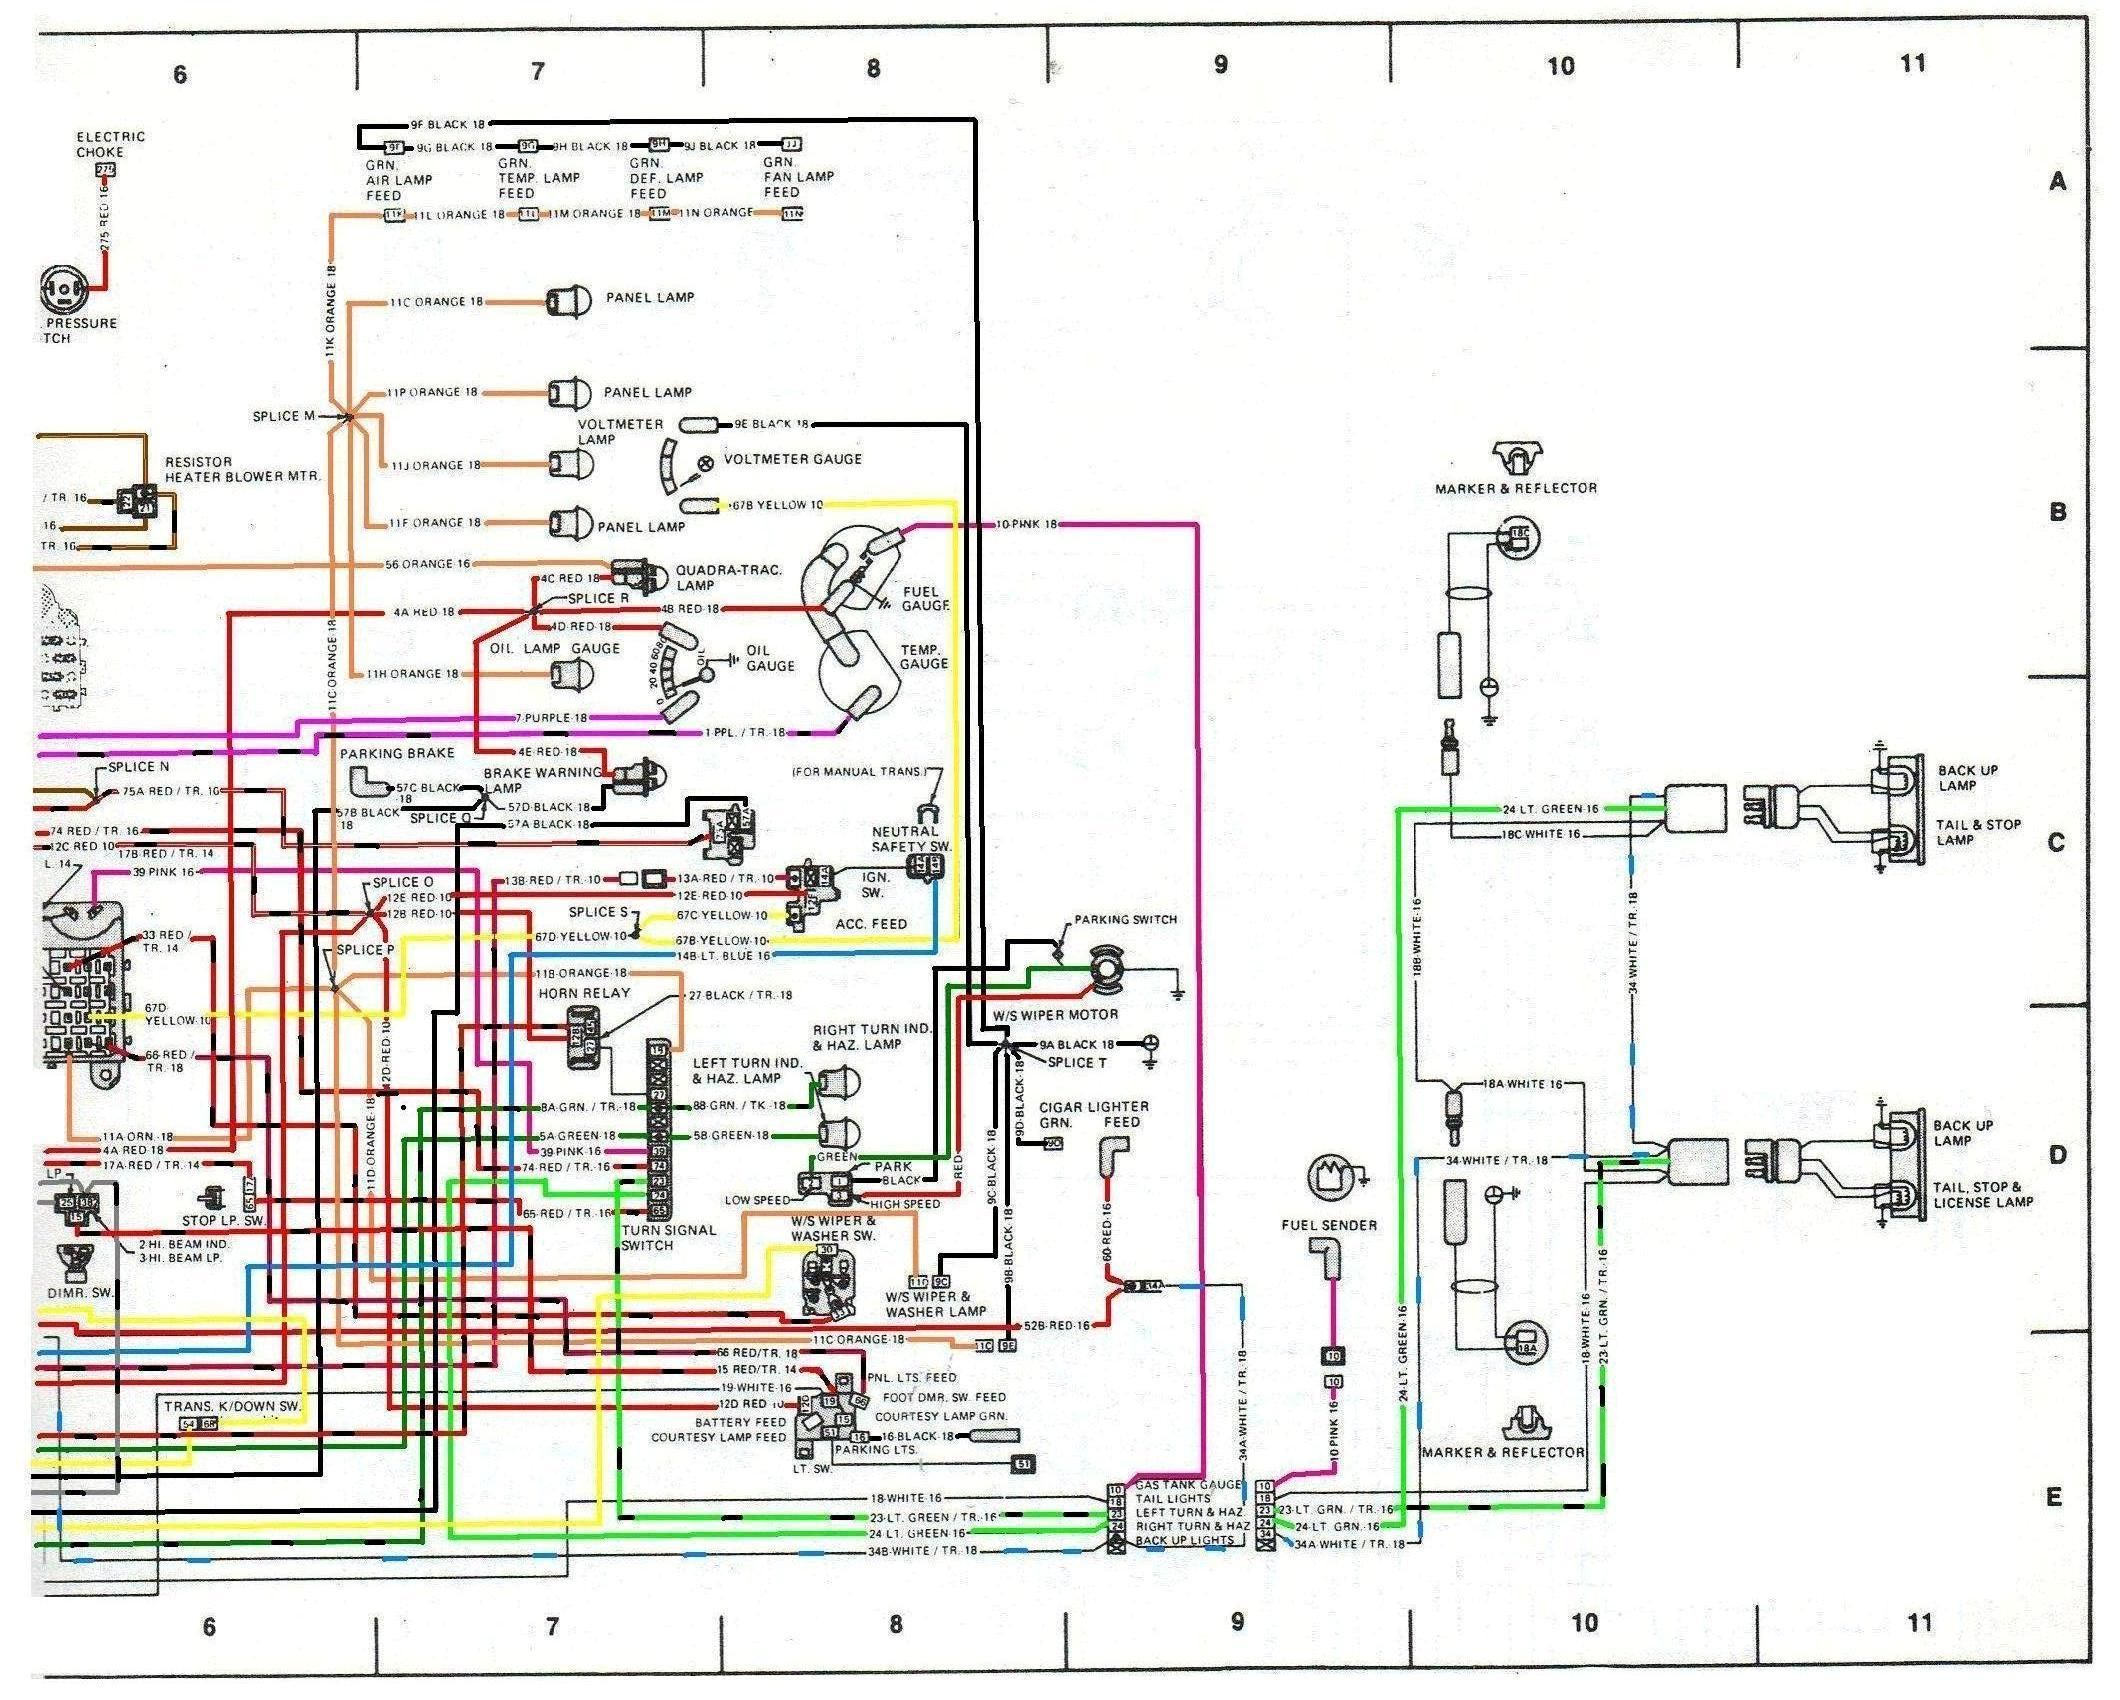 wiring diagram for jeep cj5 schematic wiring diagram 1971 Jeep CJ5 Wiring-Diagram cj5 wiring harness replacement wiring schematic diagram jeep cj5 gauge wiring cj5 wiring harness replacement wiring